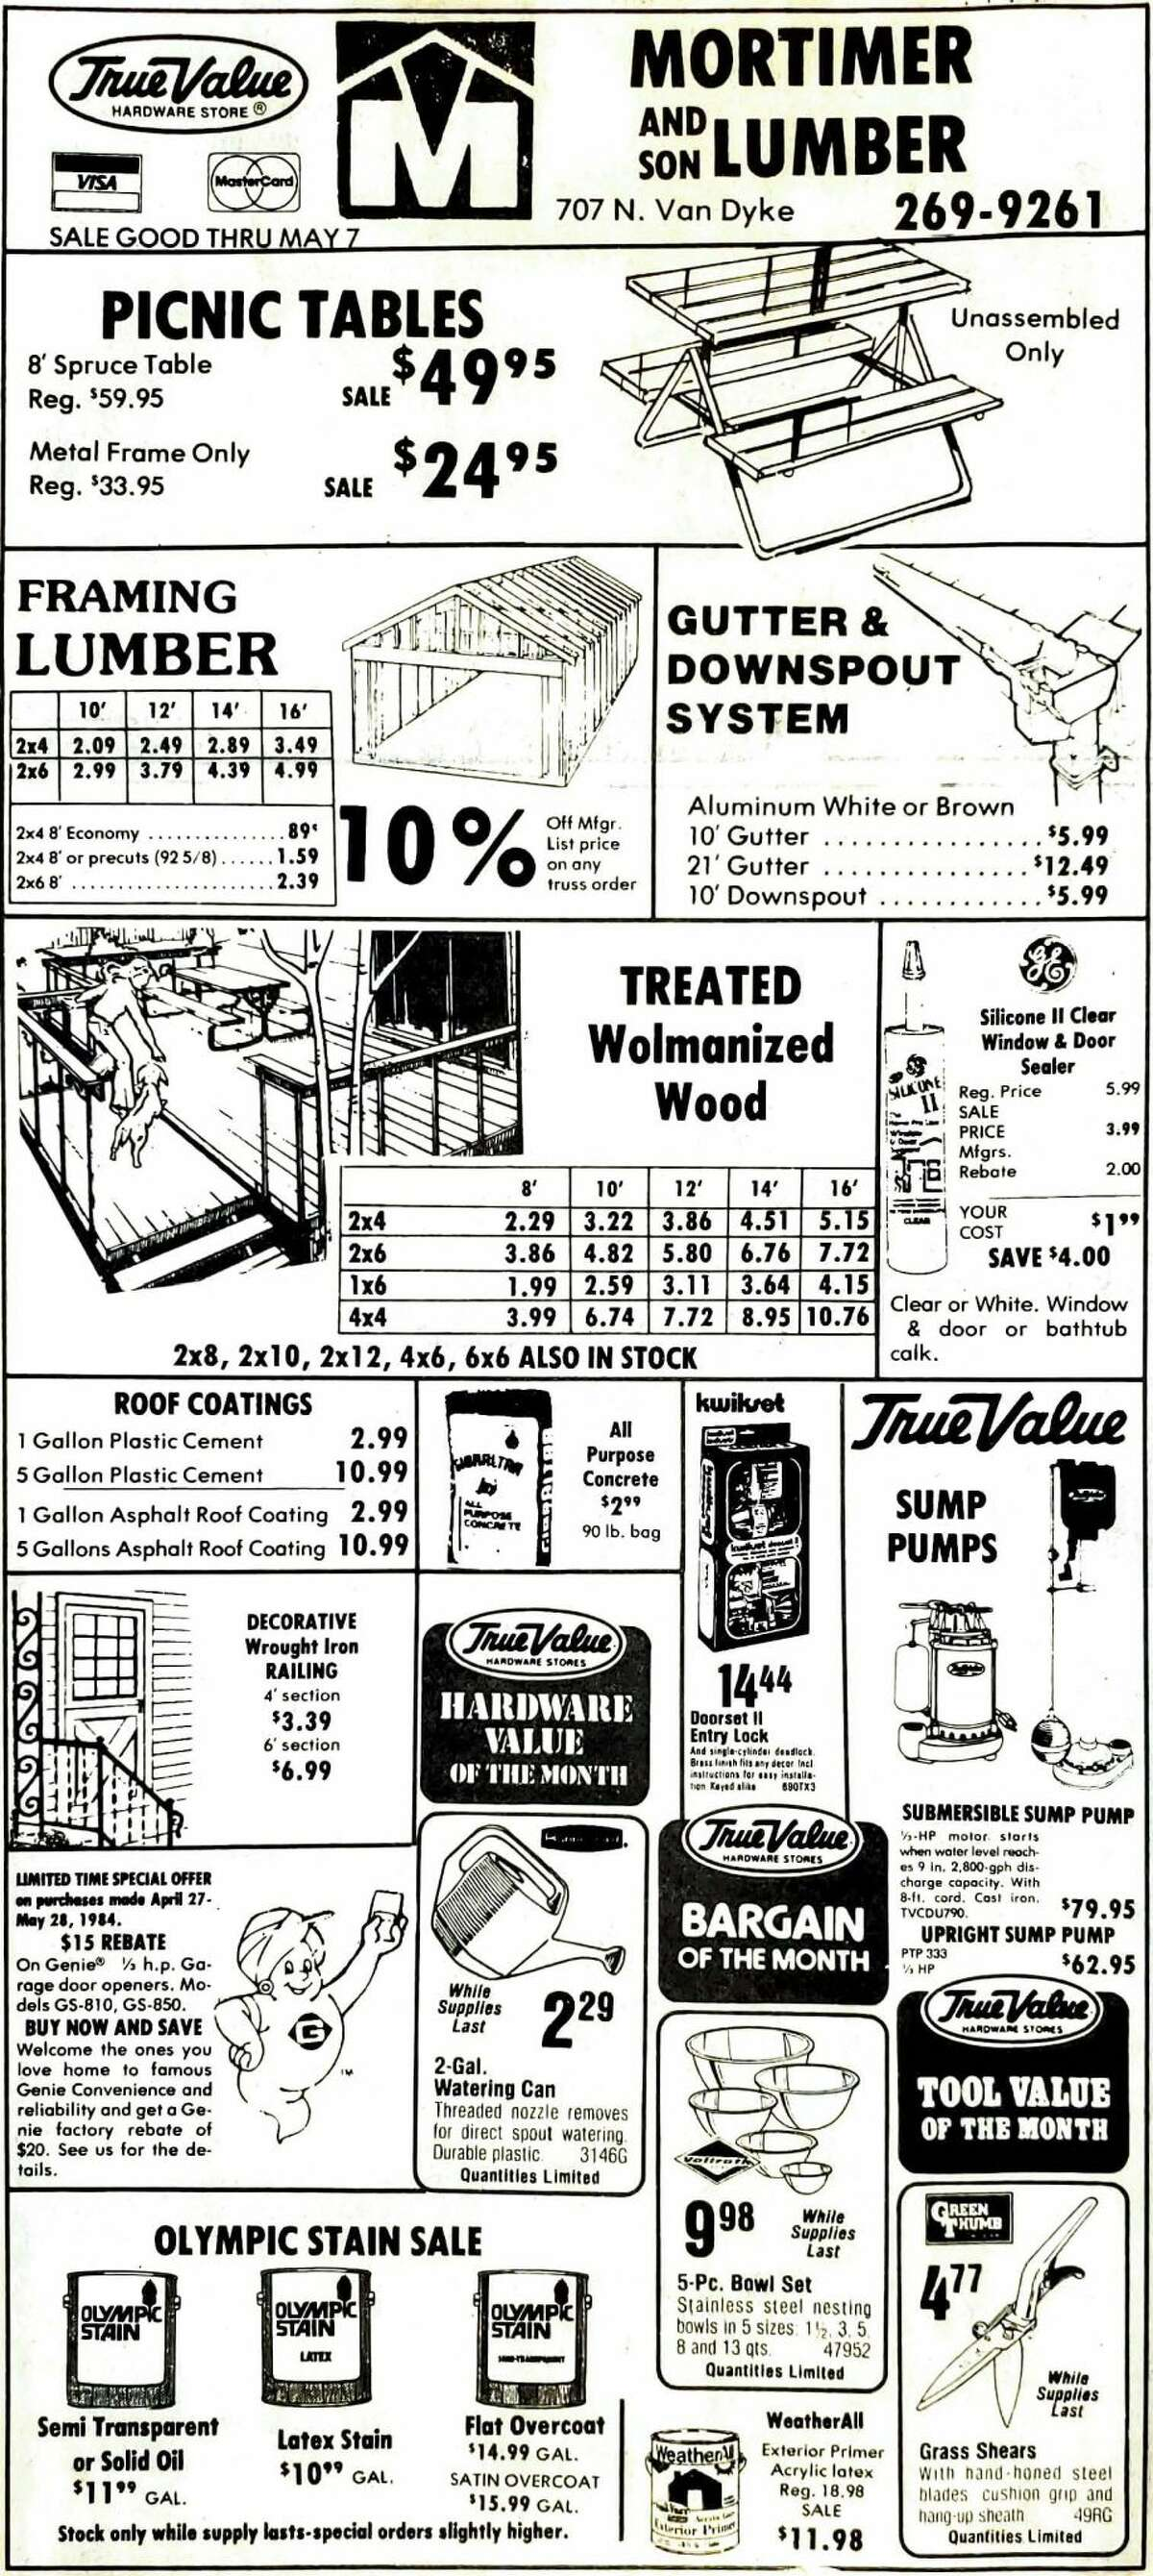 For this week's Tribune Throwback we take a look in the archives from May 1984.